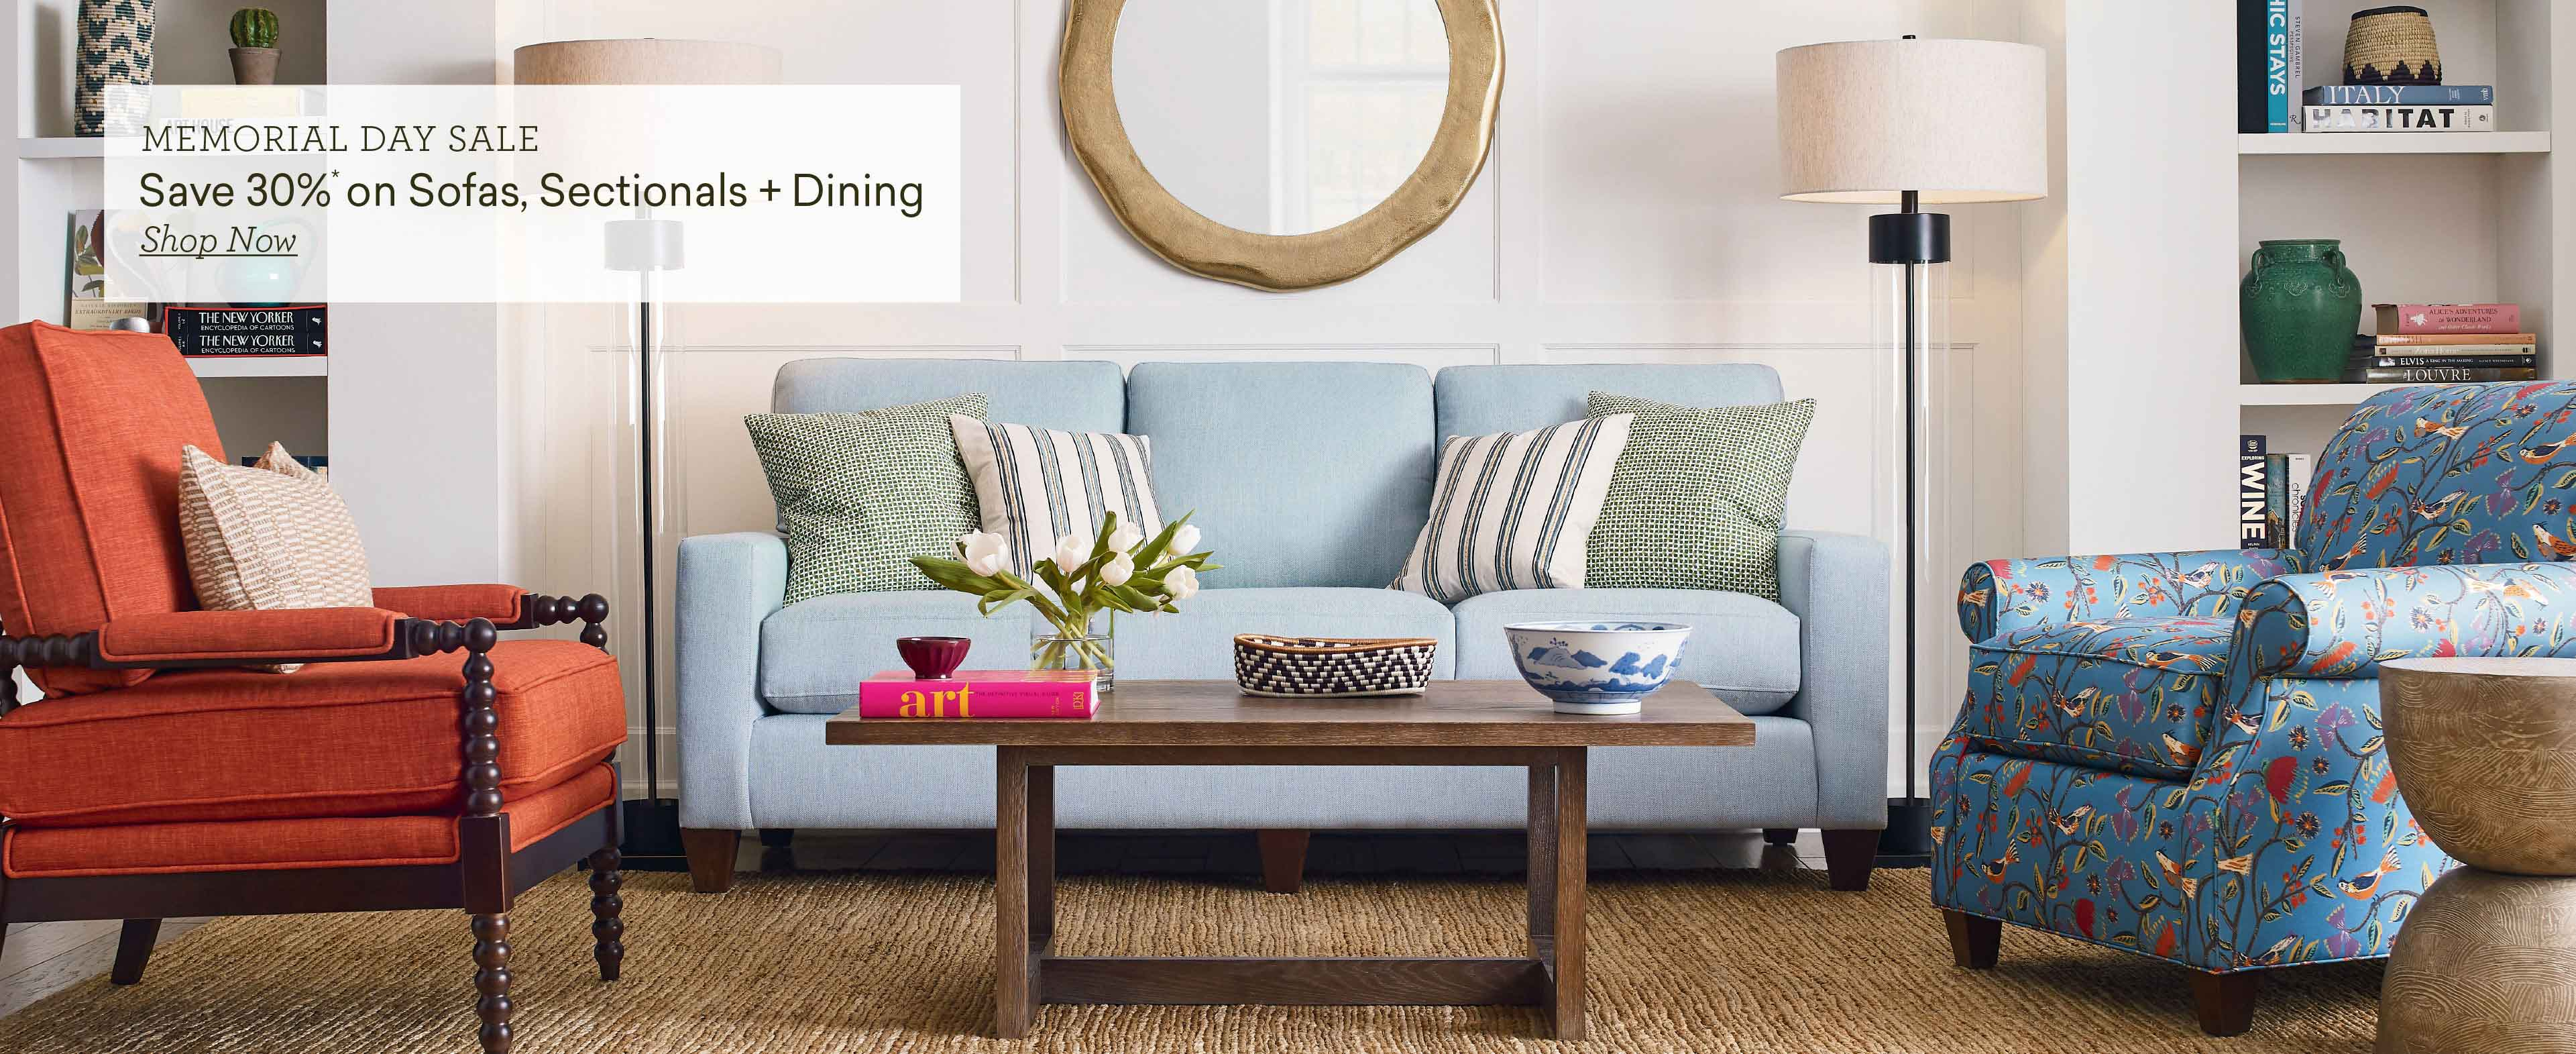 memorial day sale save 30% on sofas sectional and dining slide 1 Desktop